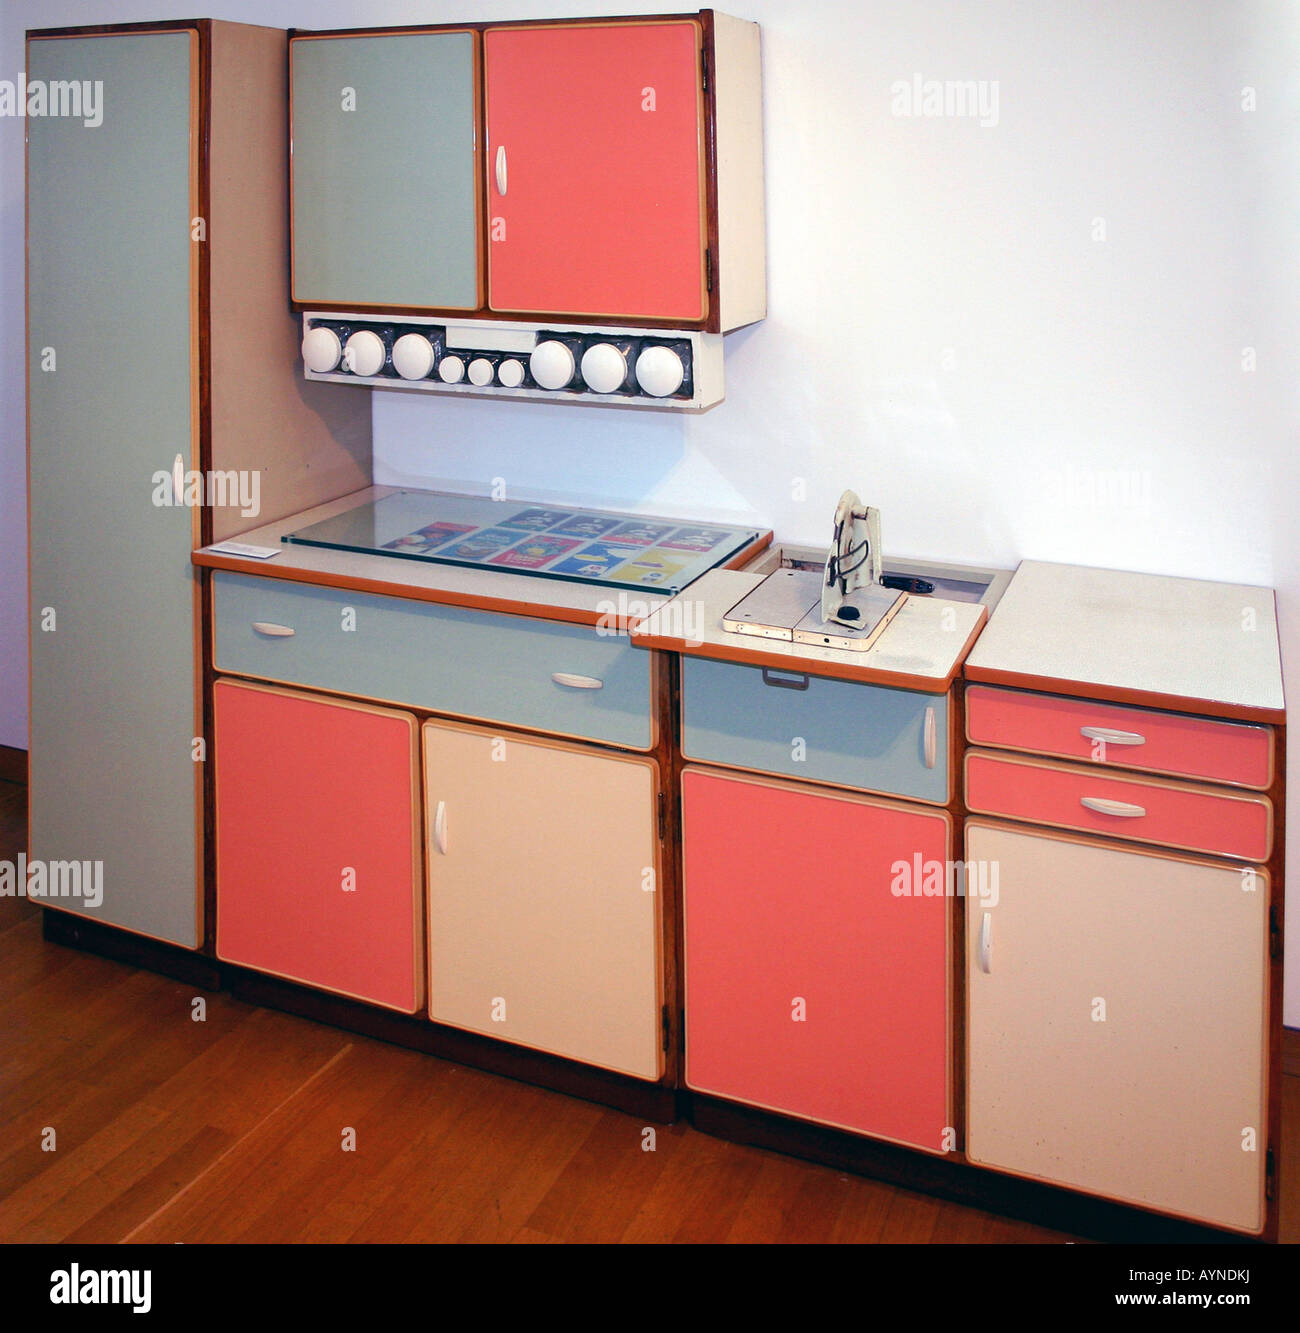 1950s Kitchen Design 1950s Kitchen Design Stock Photos 1950s Kitchen Design Stock